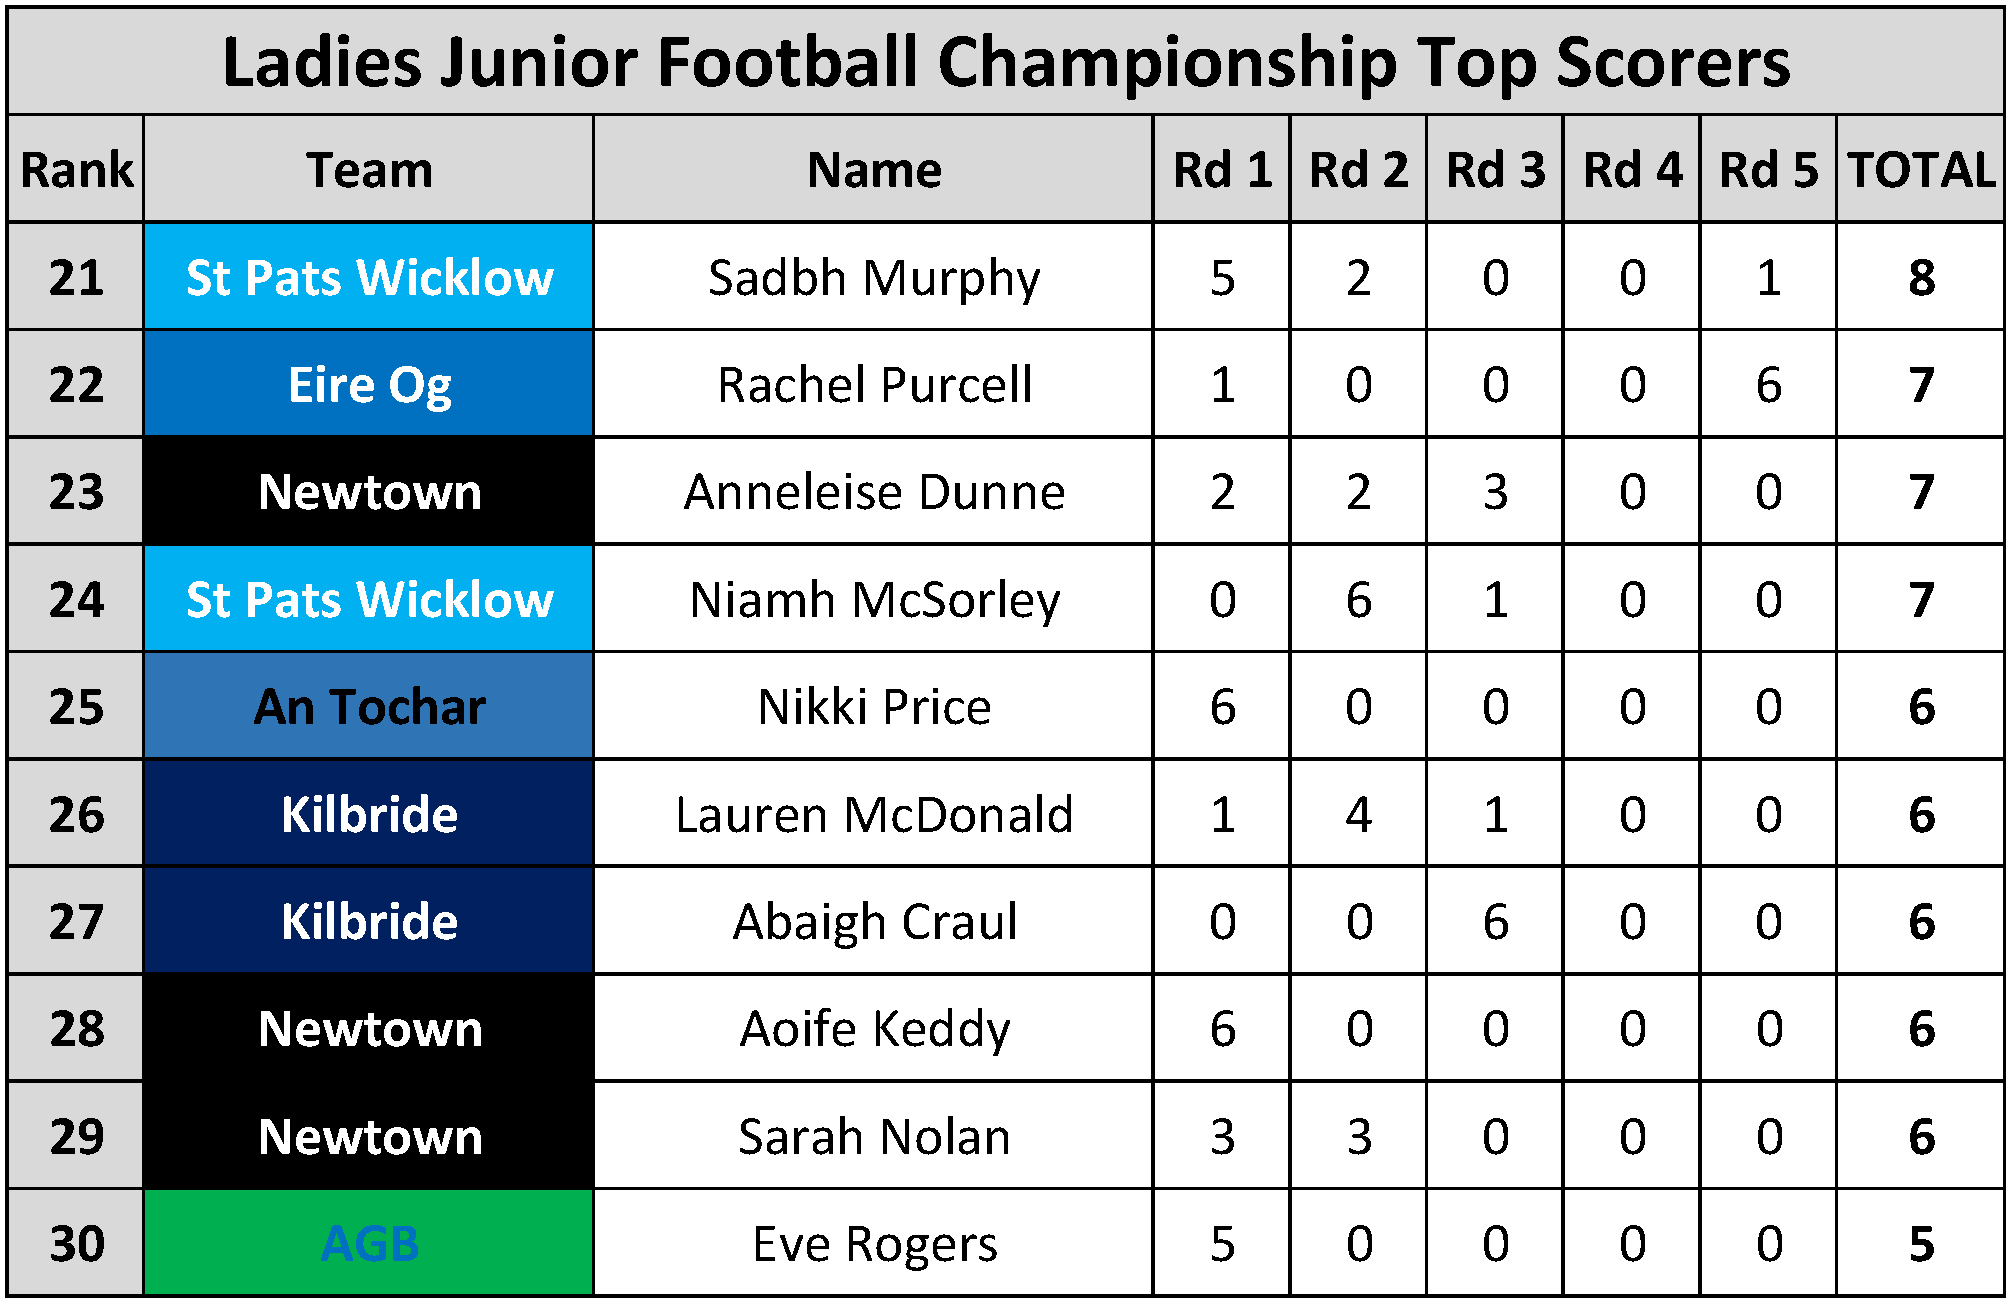 Top Scorers_Page_104